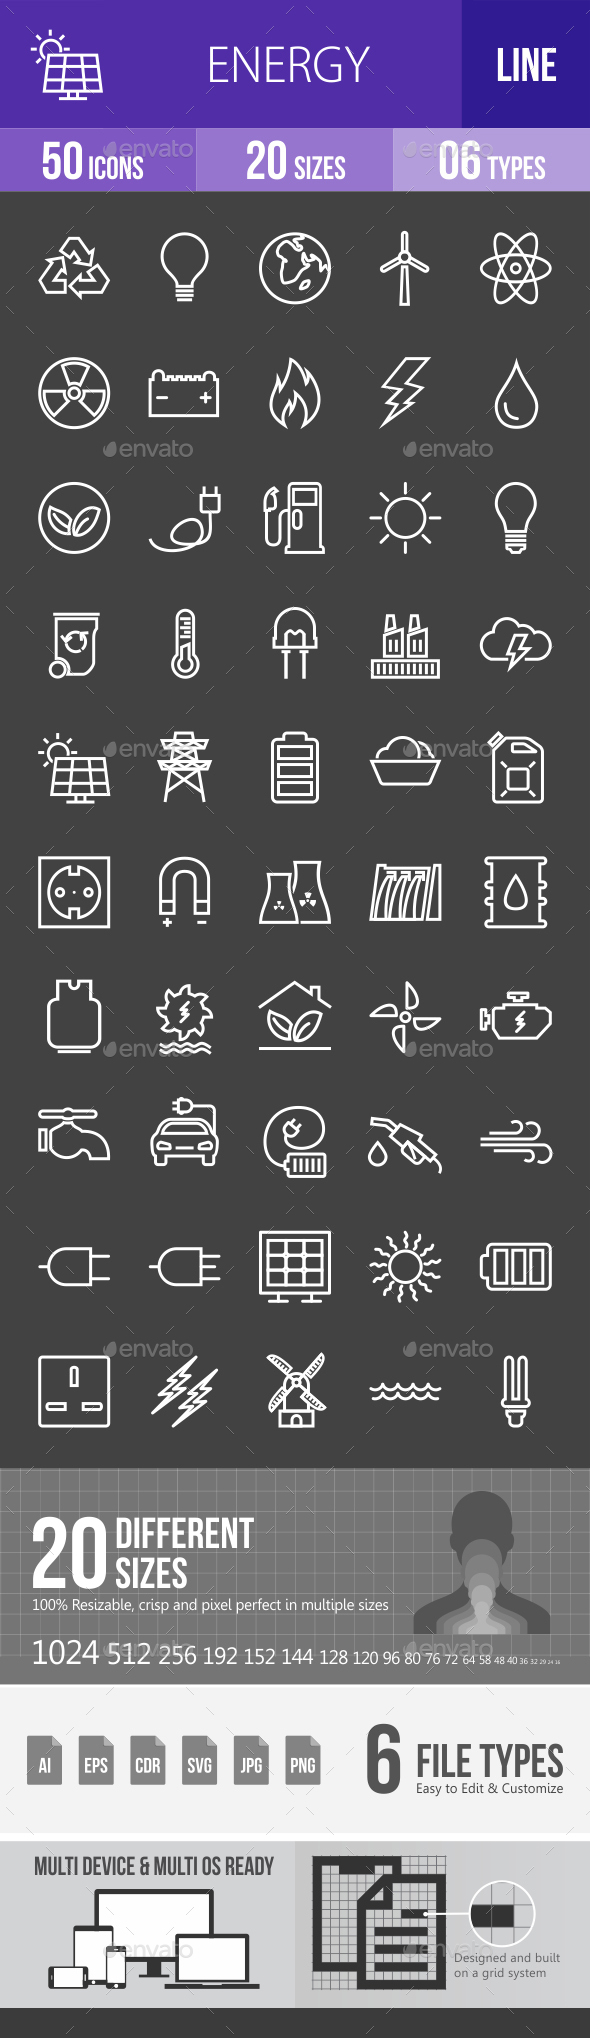 Energy Line Inverted Icons - Icons